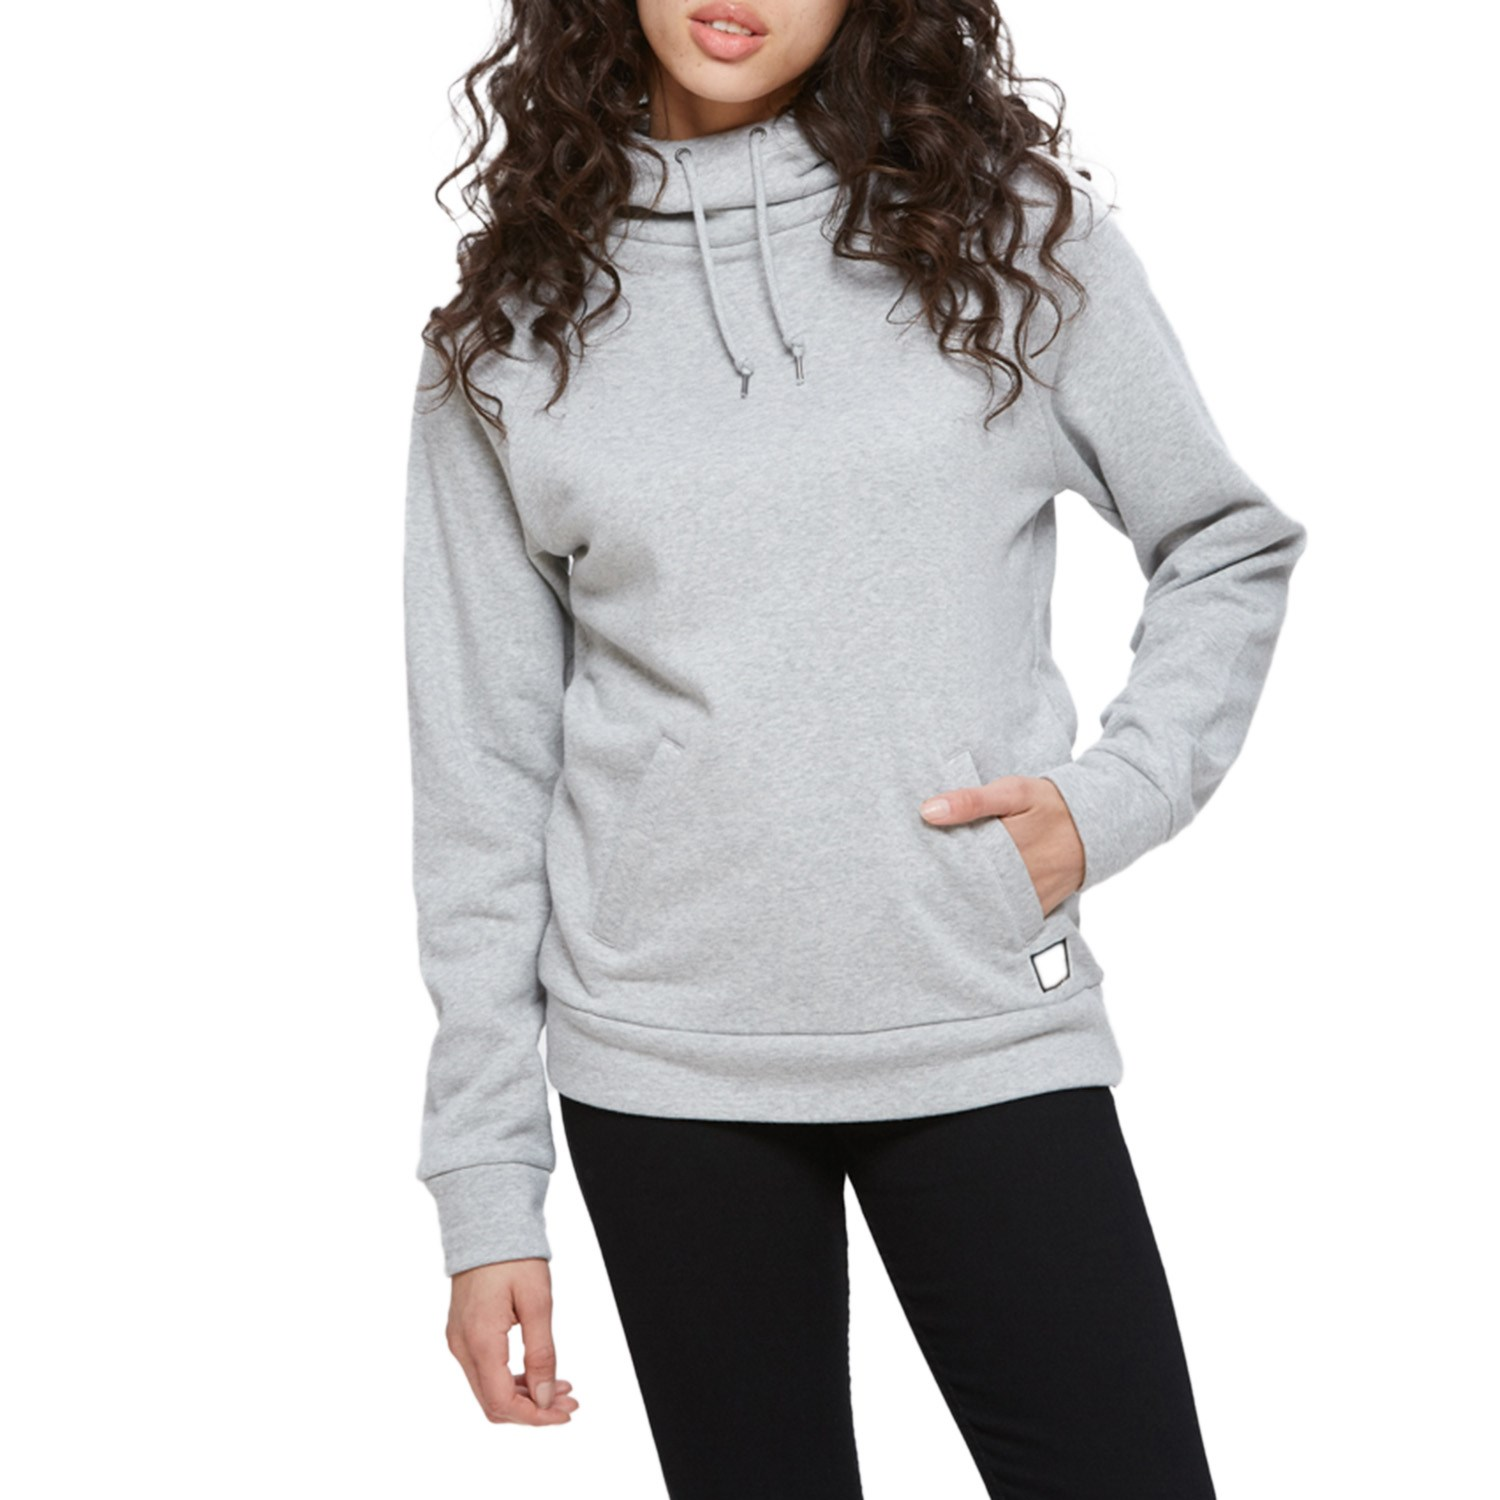 Obey Clothing Comfy Creatures Pullover Hoodie - Women's | evo